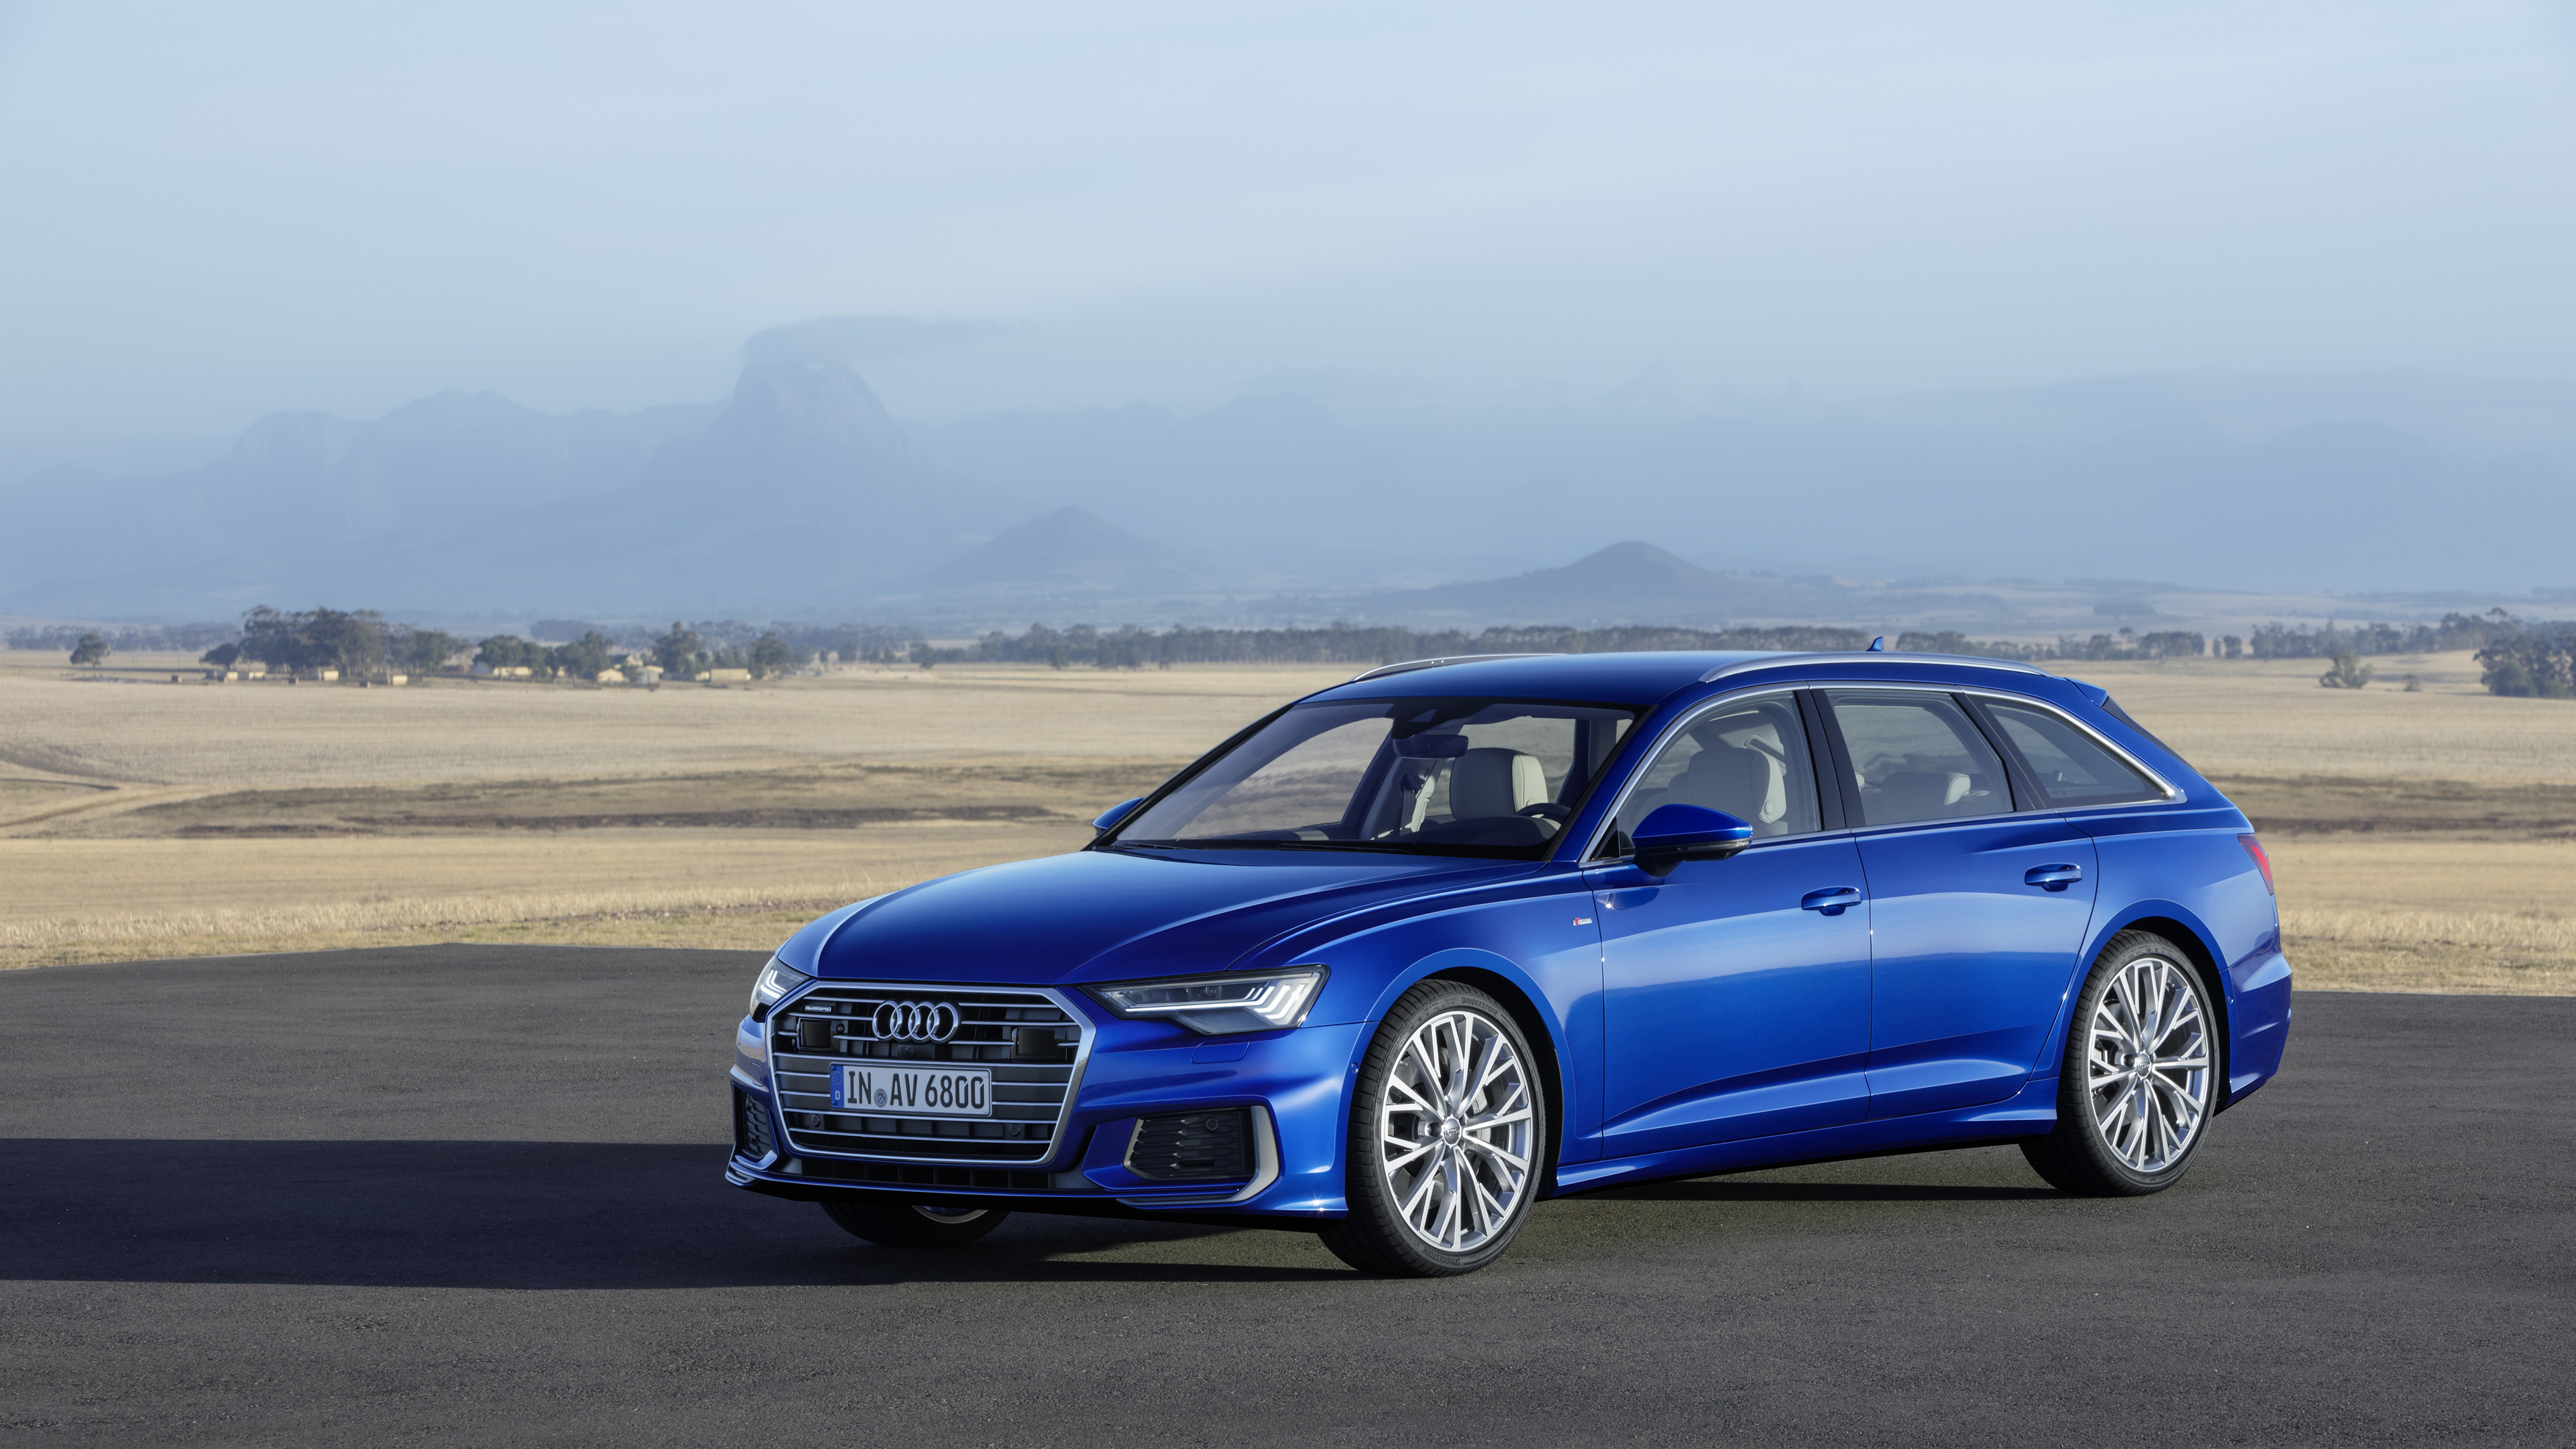 This Is The 2019 Audi A6 Avant America Can T Have The Drive